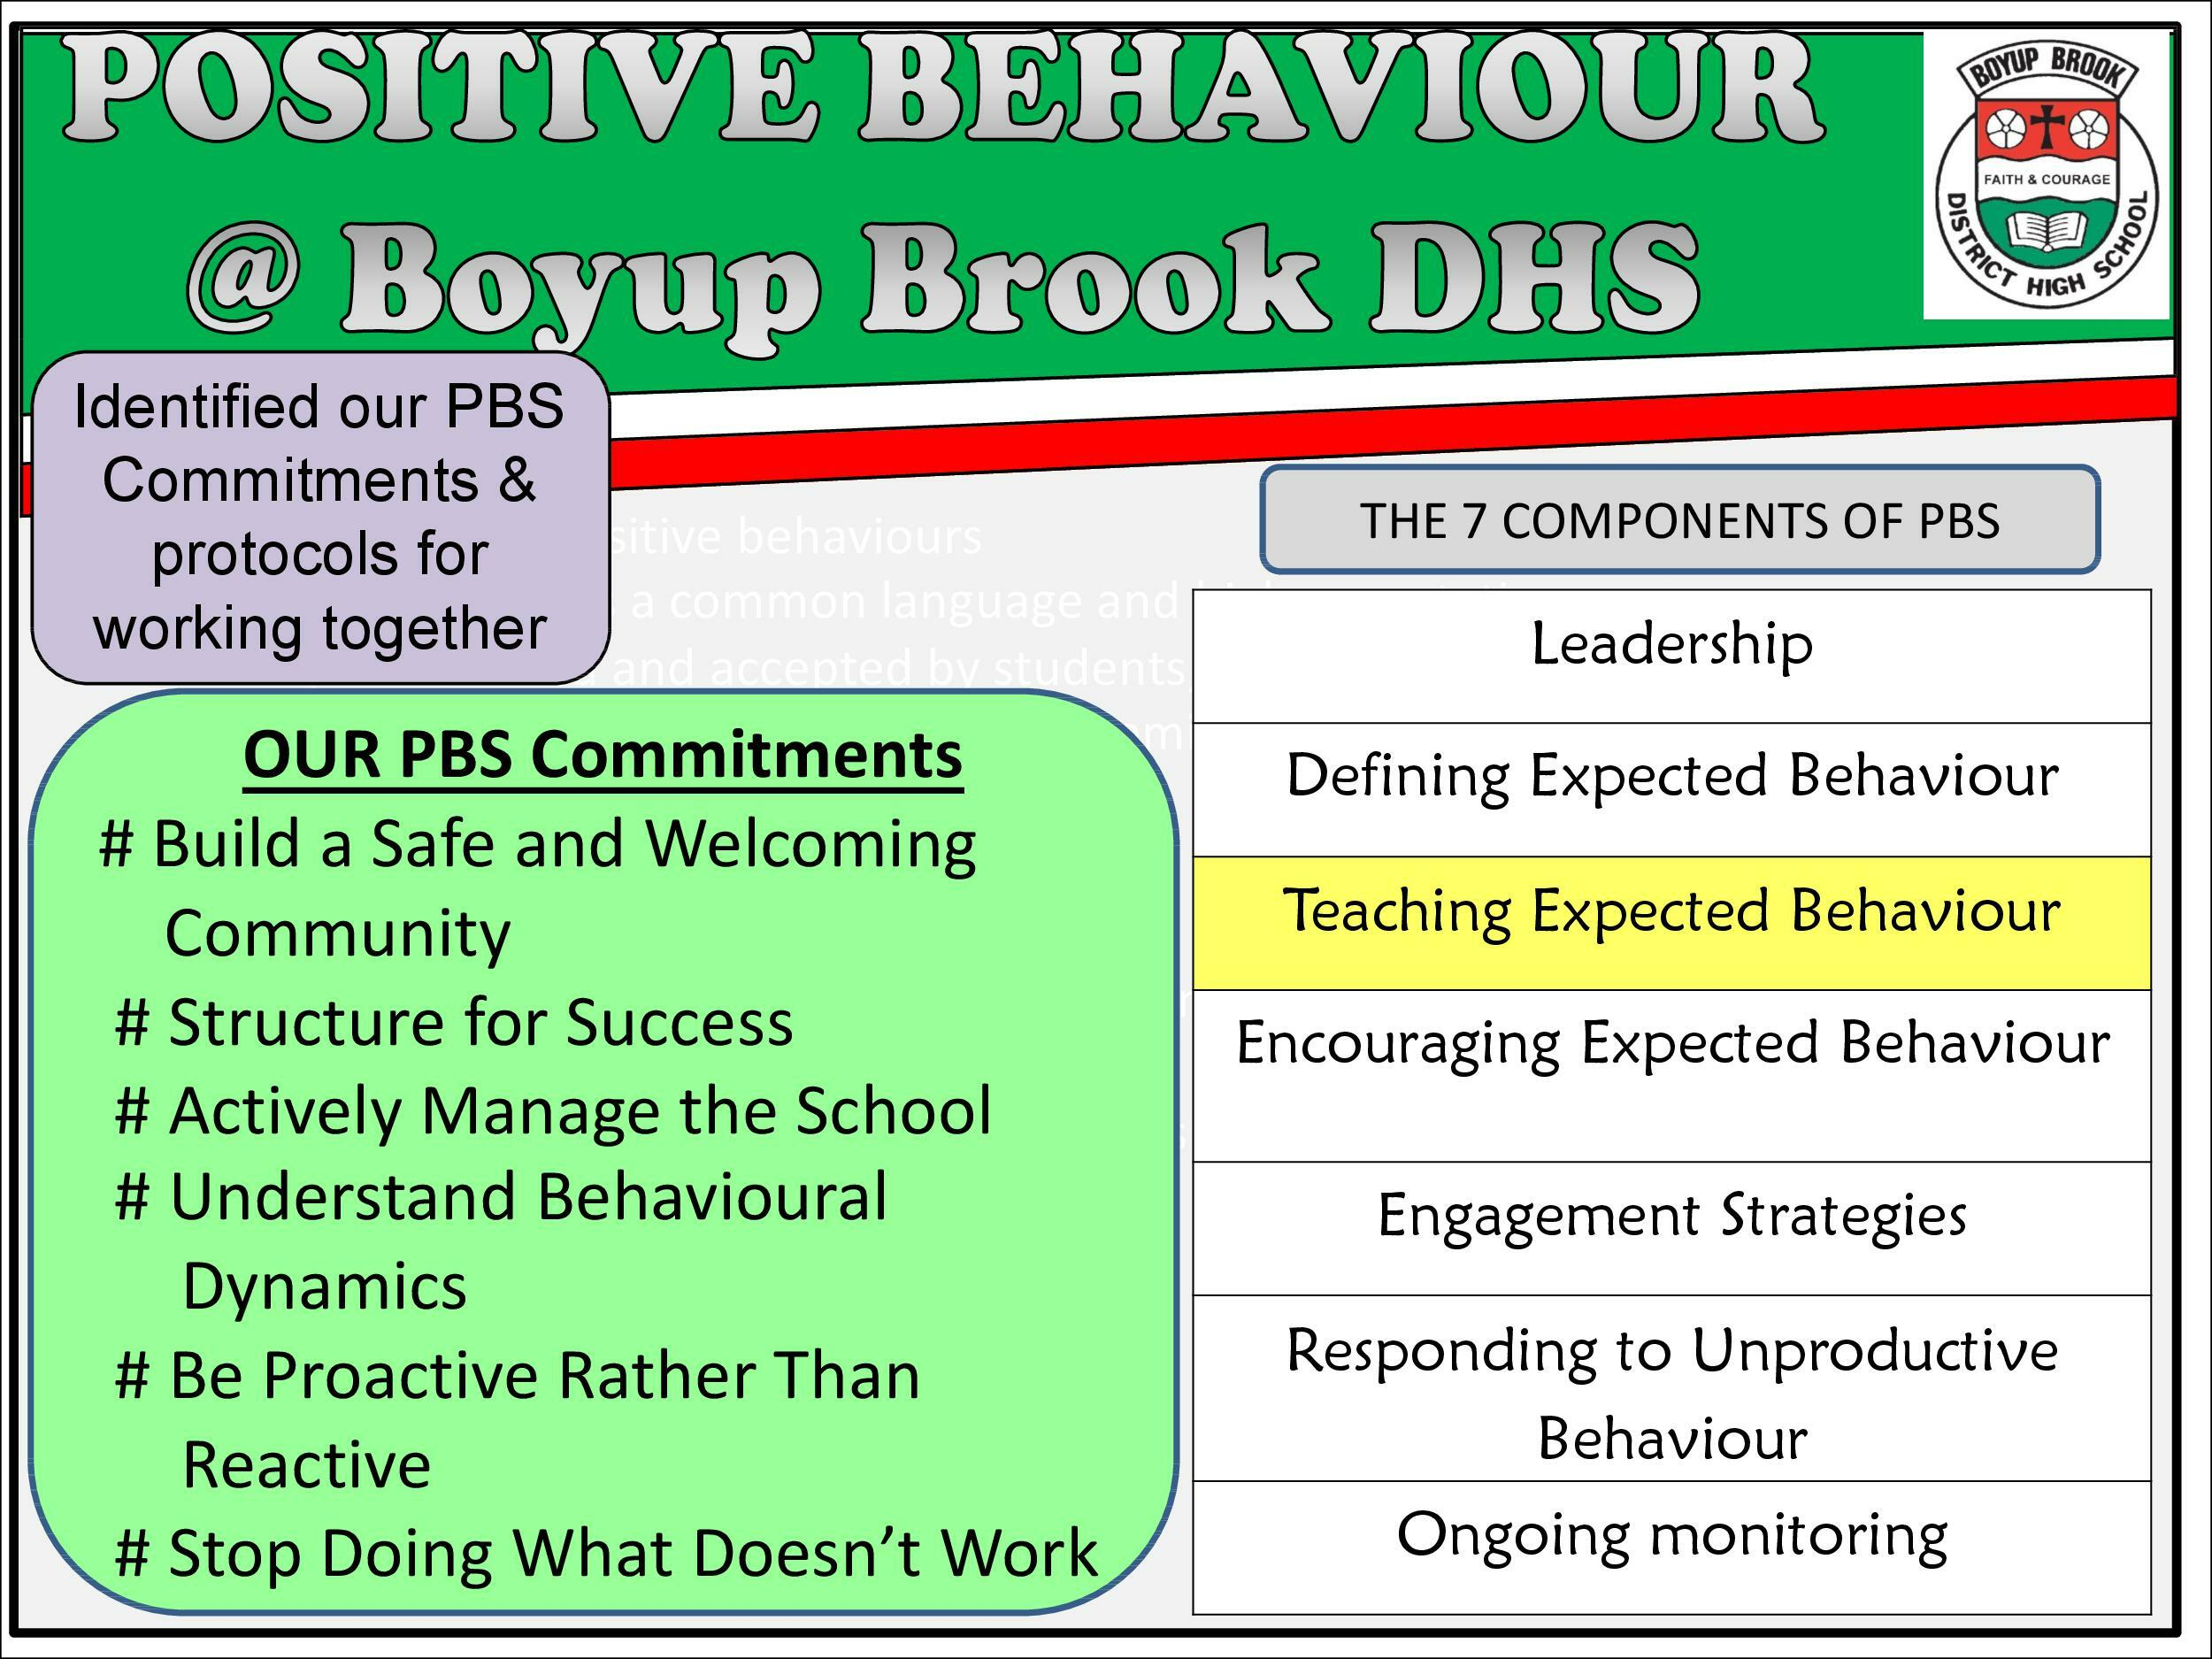 Positive Behaviour Support Page 6